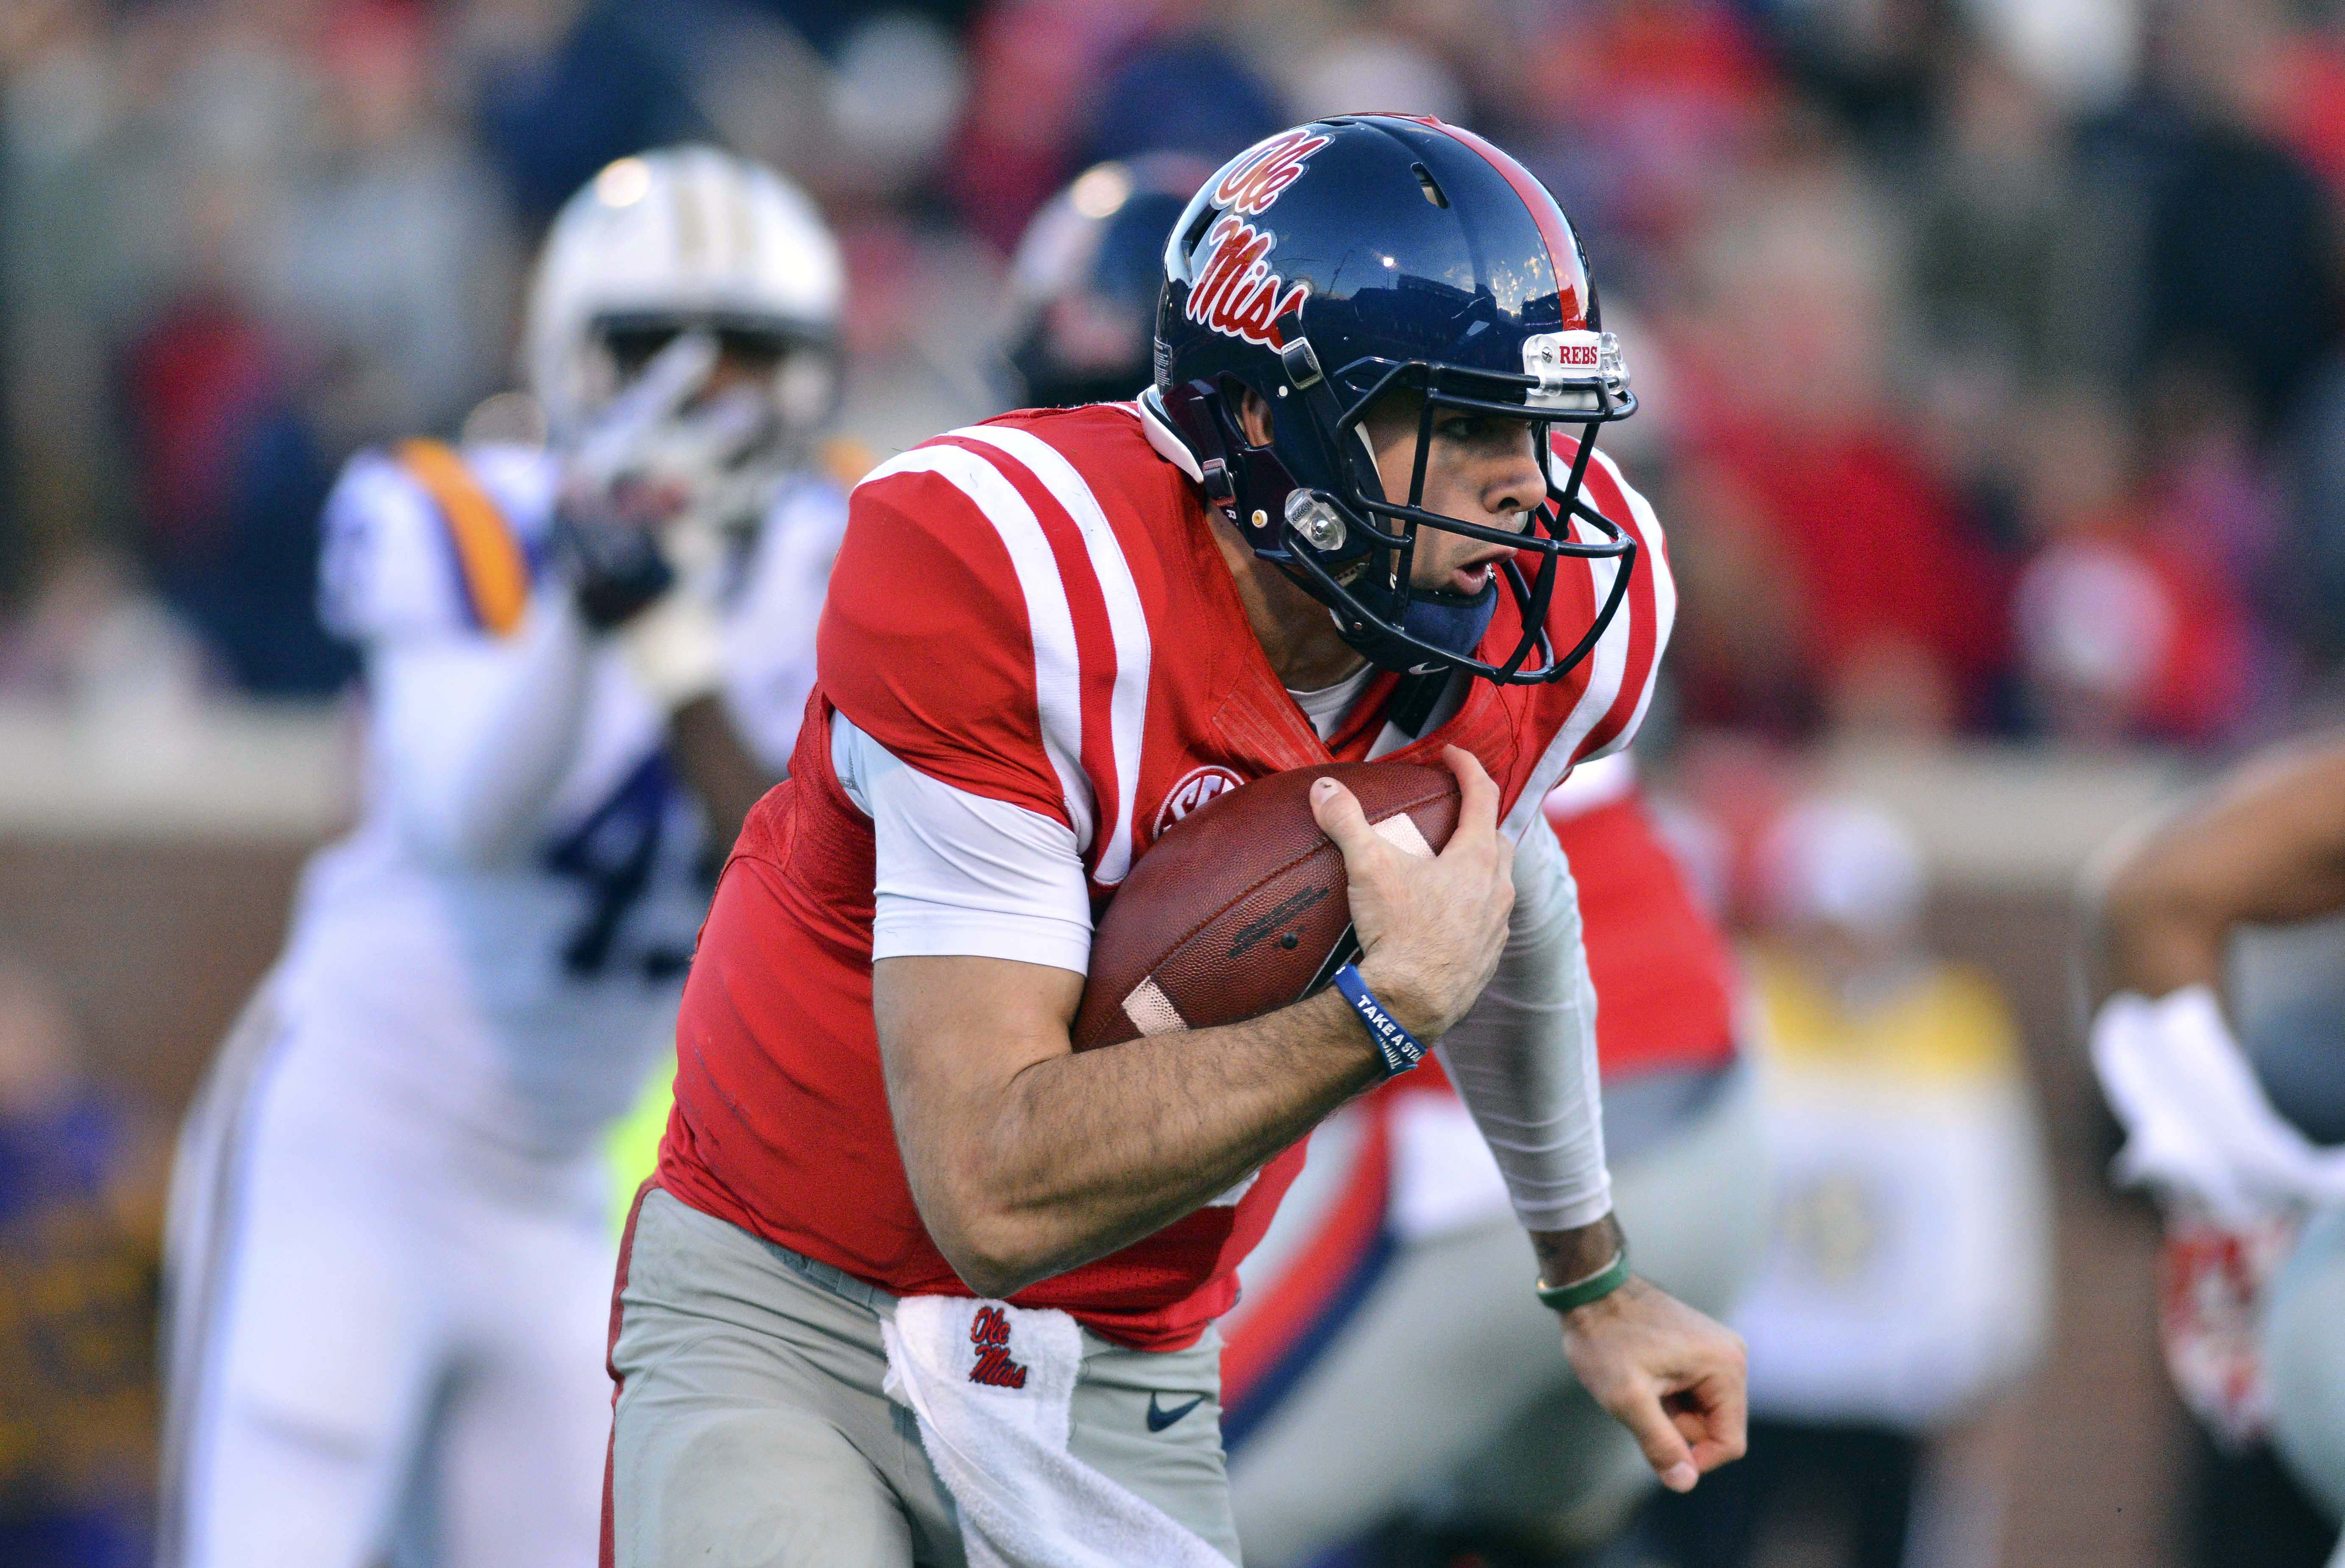 Week 8 college football picks: Let's shake up the SEC West race